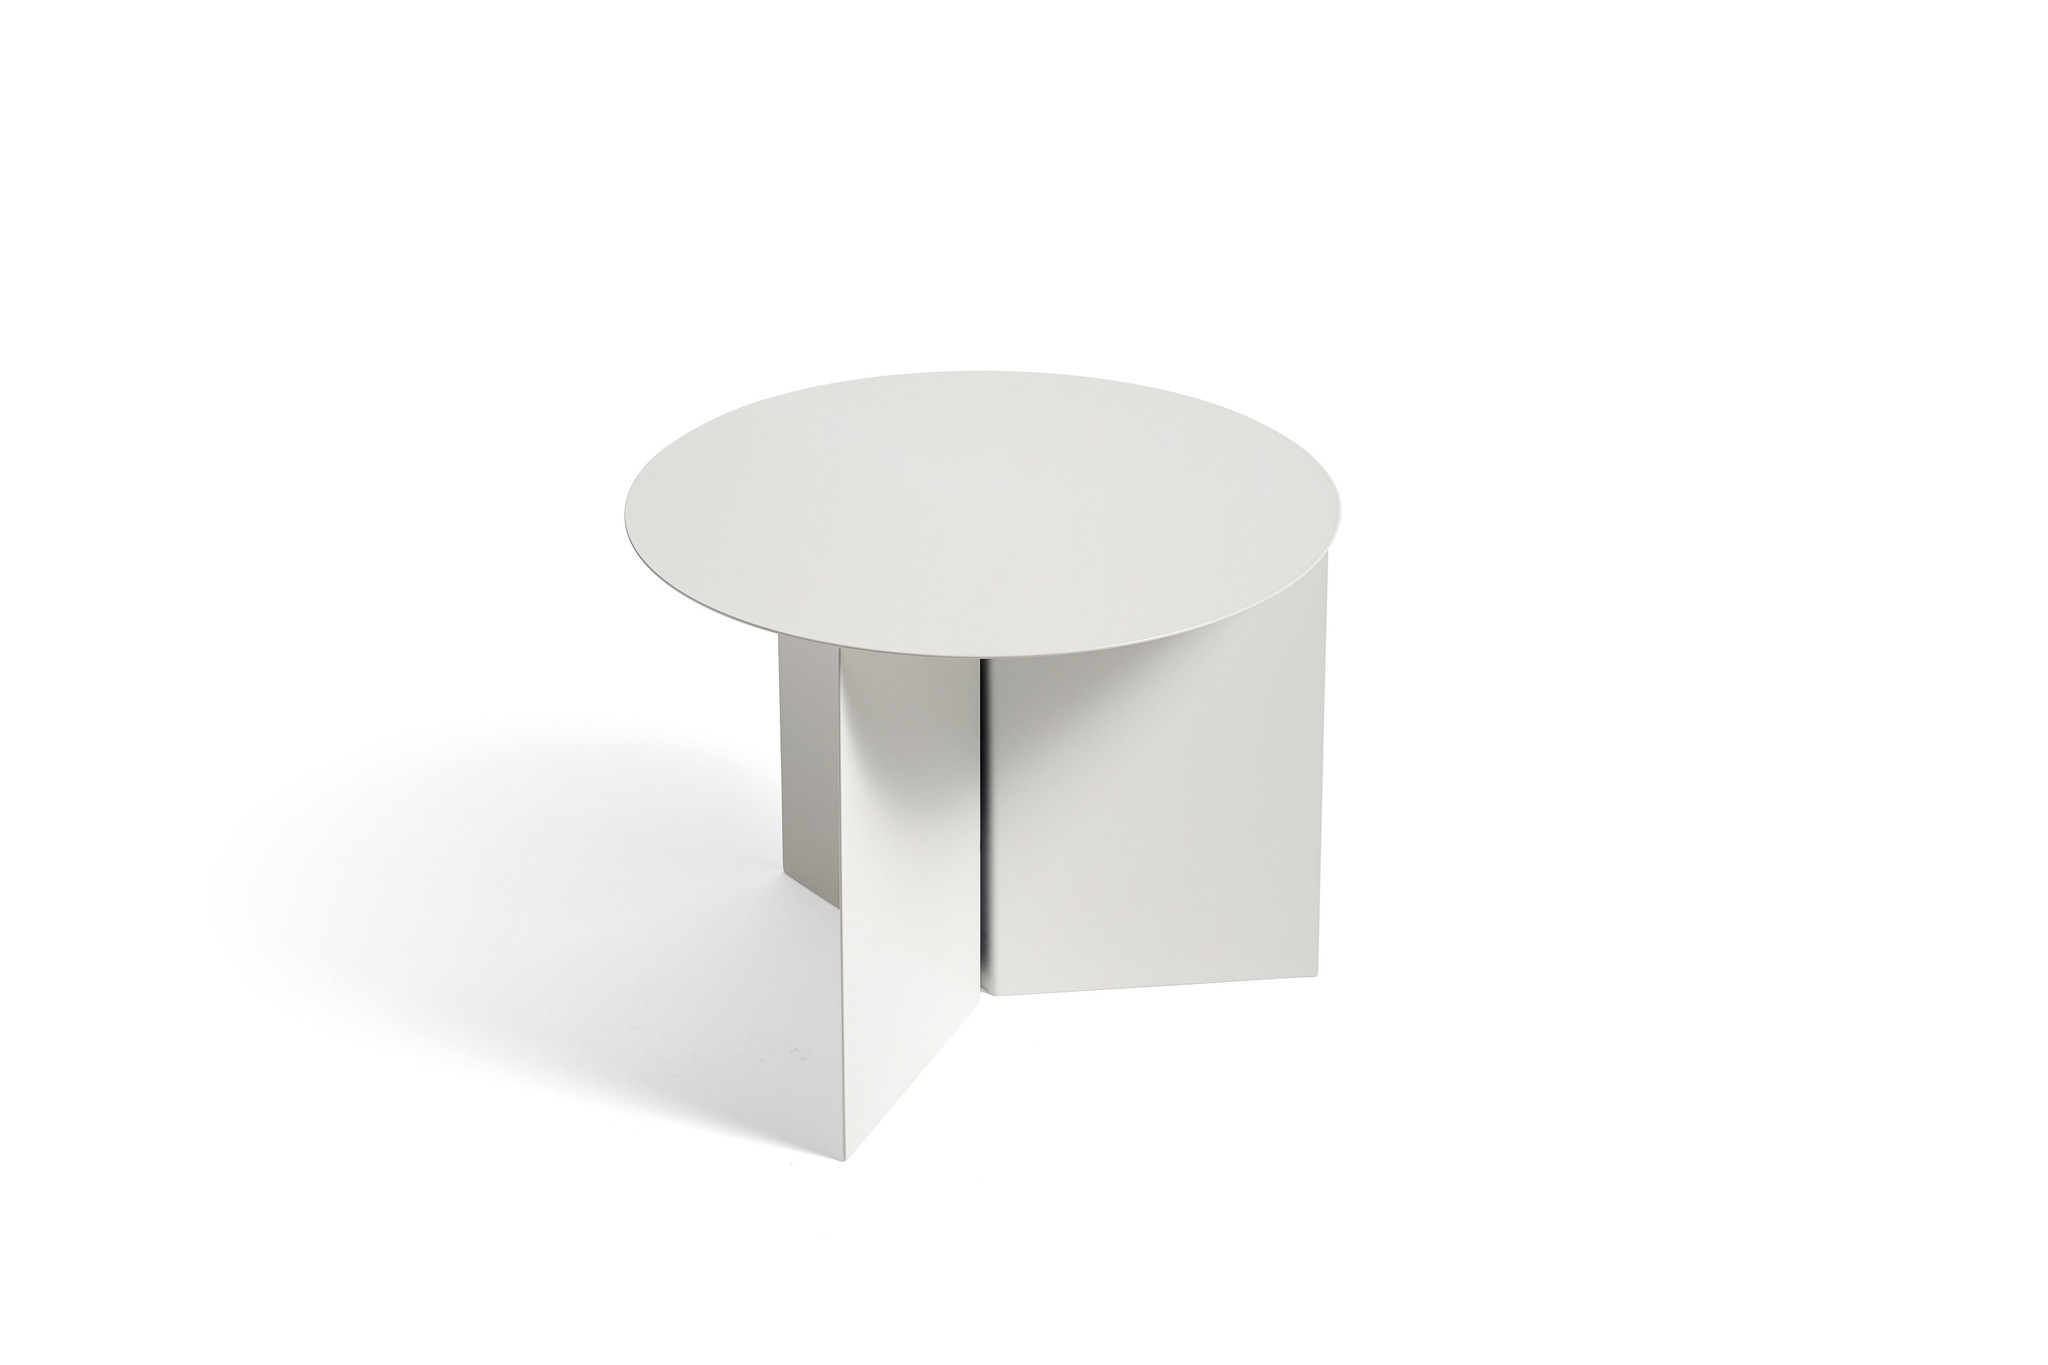 Slit table - Round side table-3